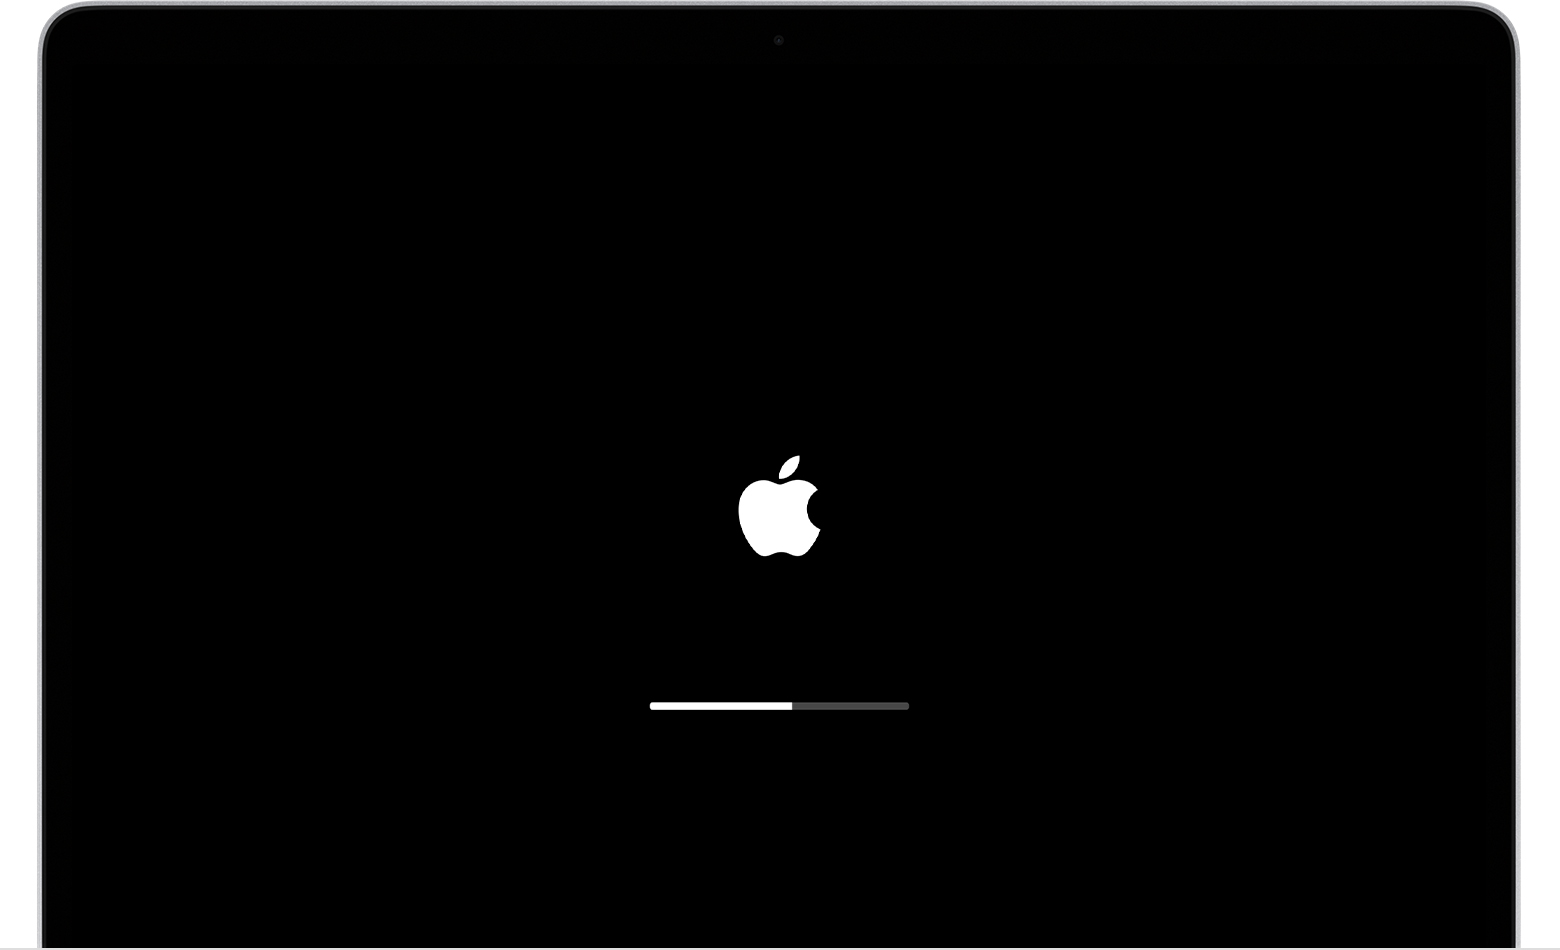 Apple logo screen